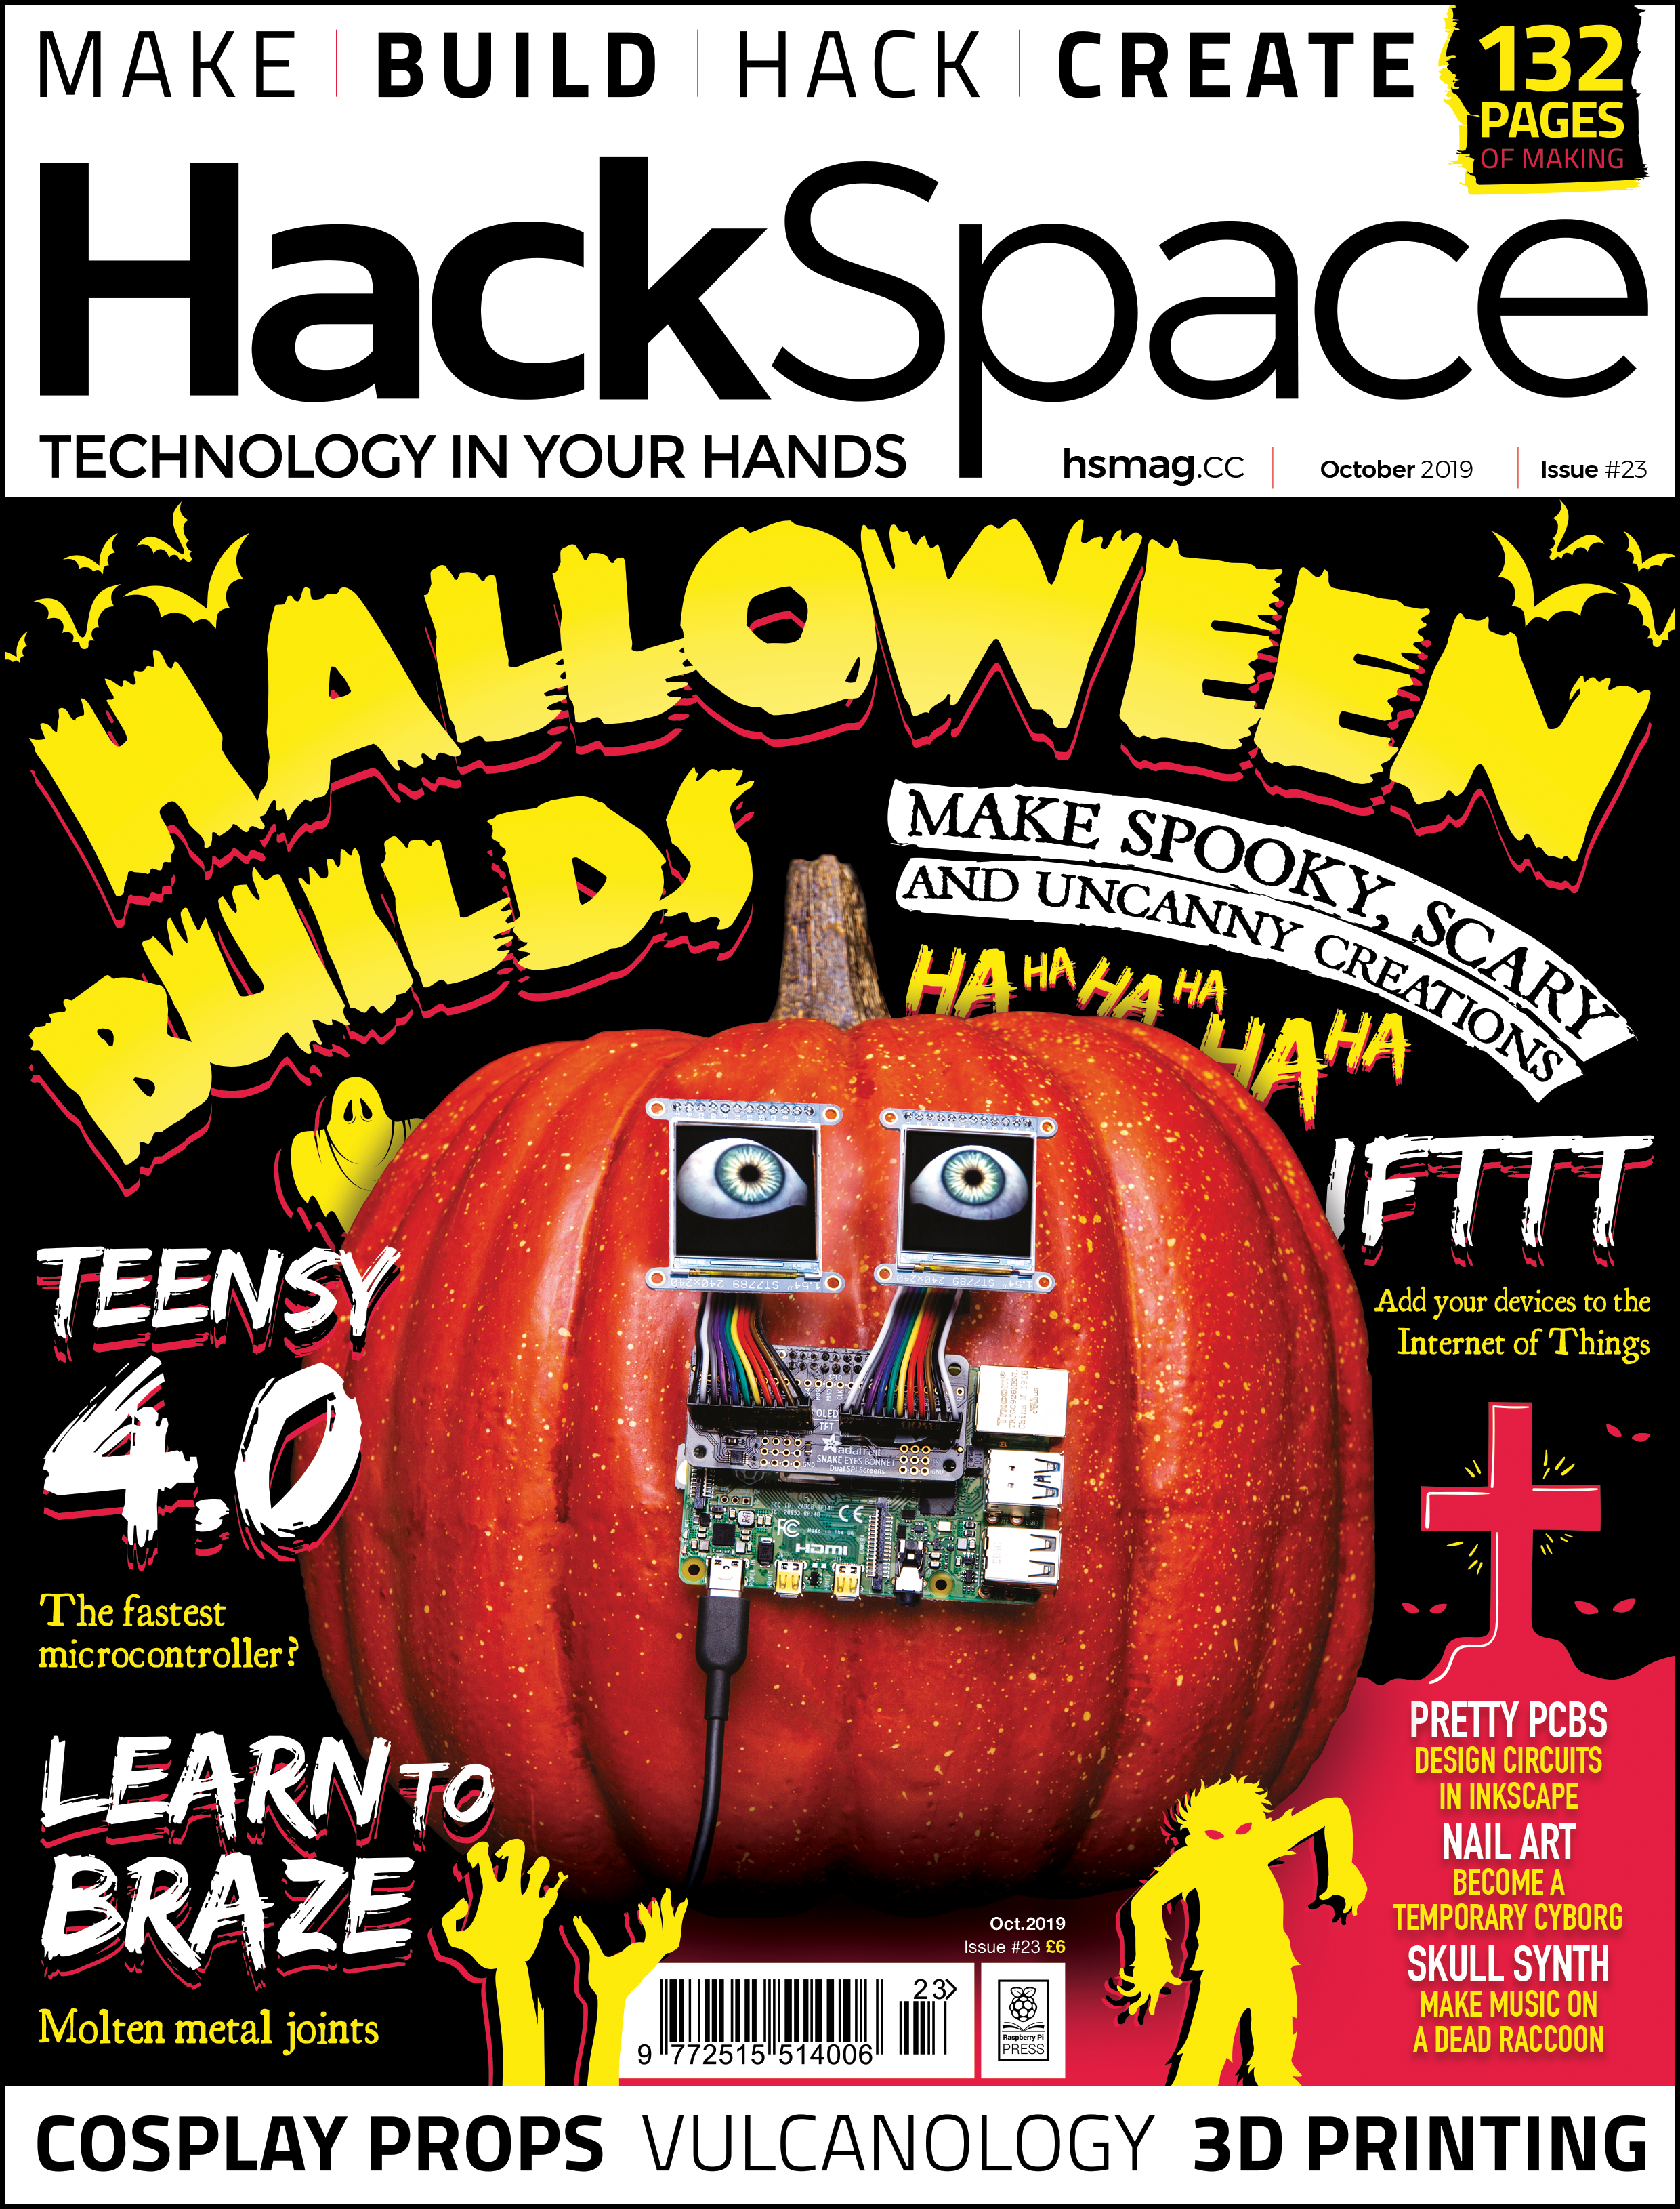 Issue 23 cover